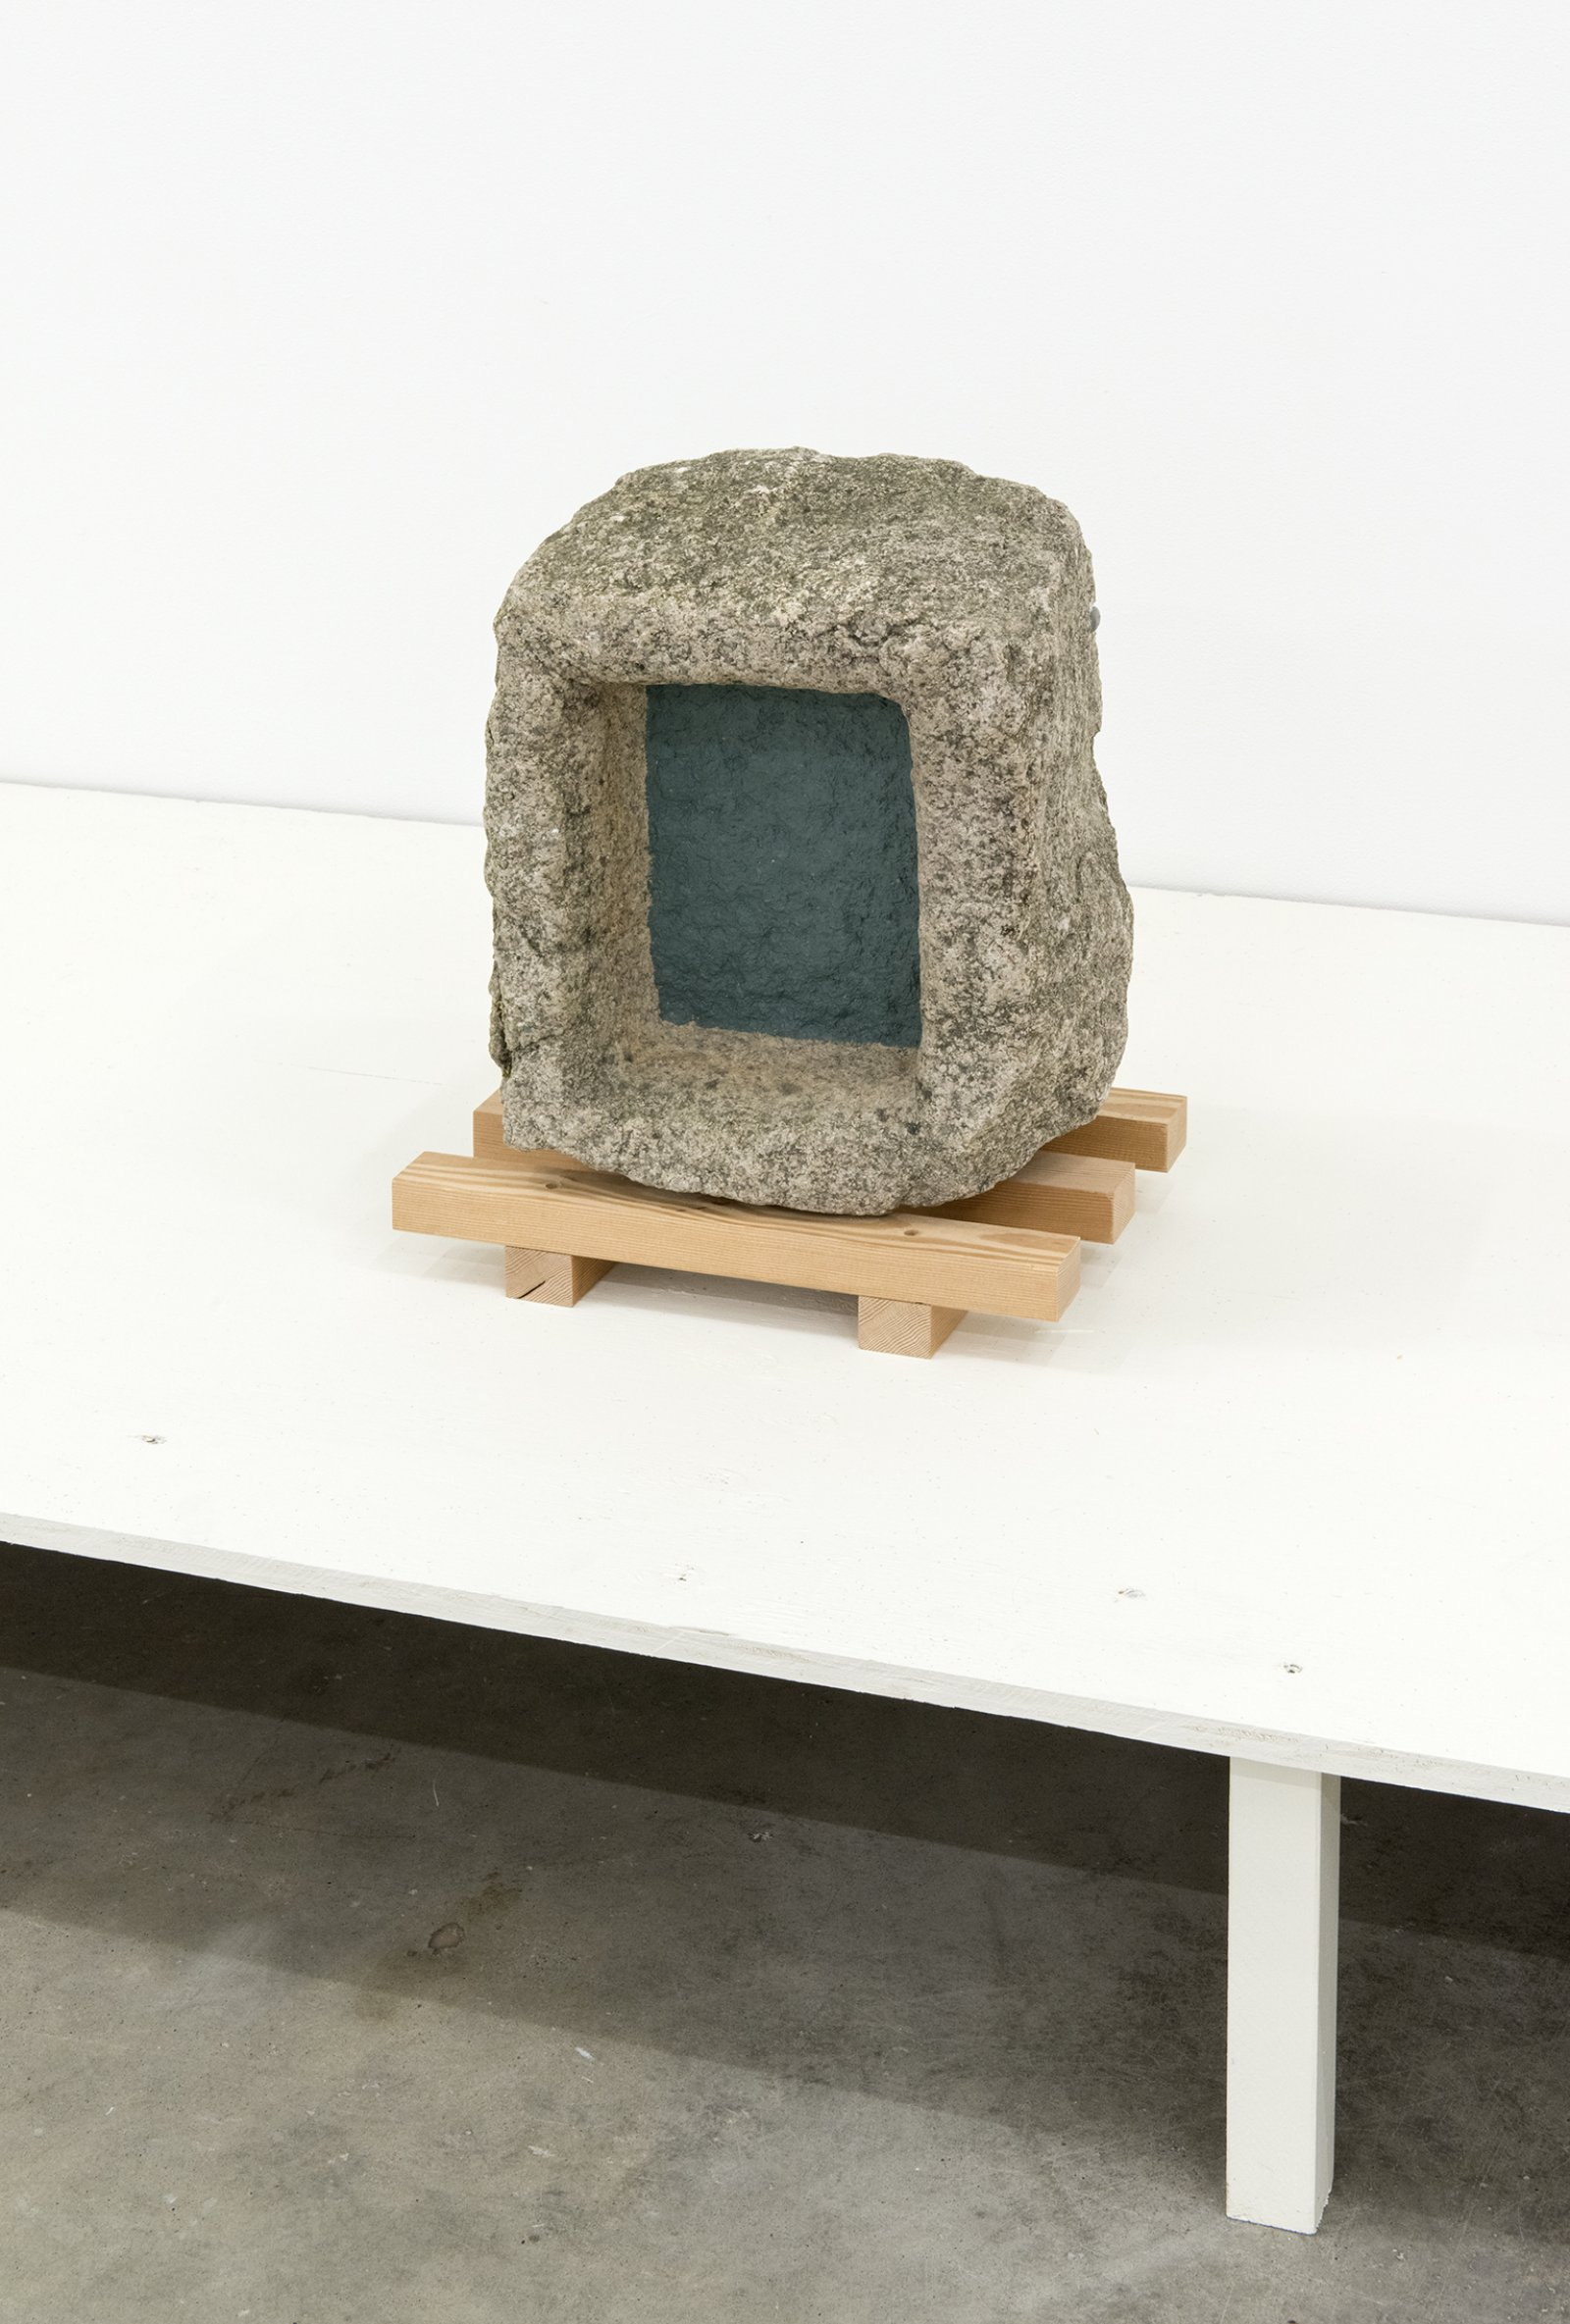 Gareth Moore, Antique Stone, 2013, painted hand chiseled old stone, 18 x 14 x 9 in. (44 x 36 x 22 cm) by Ashes Withyman